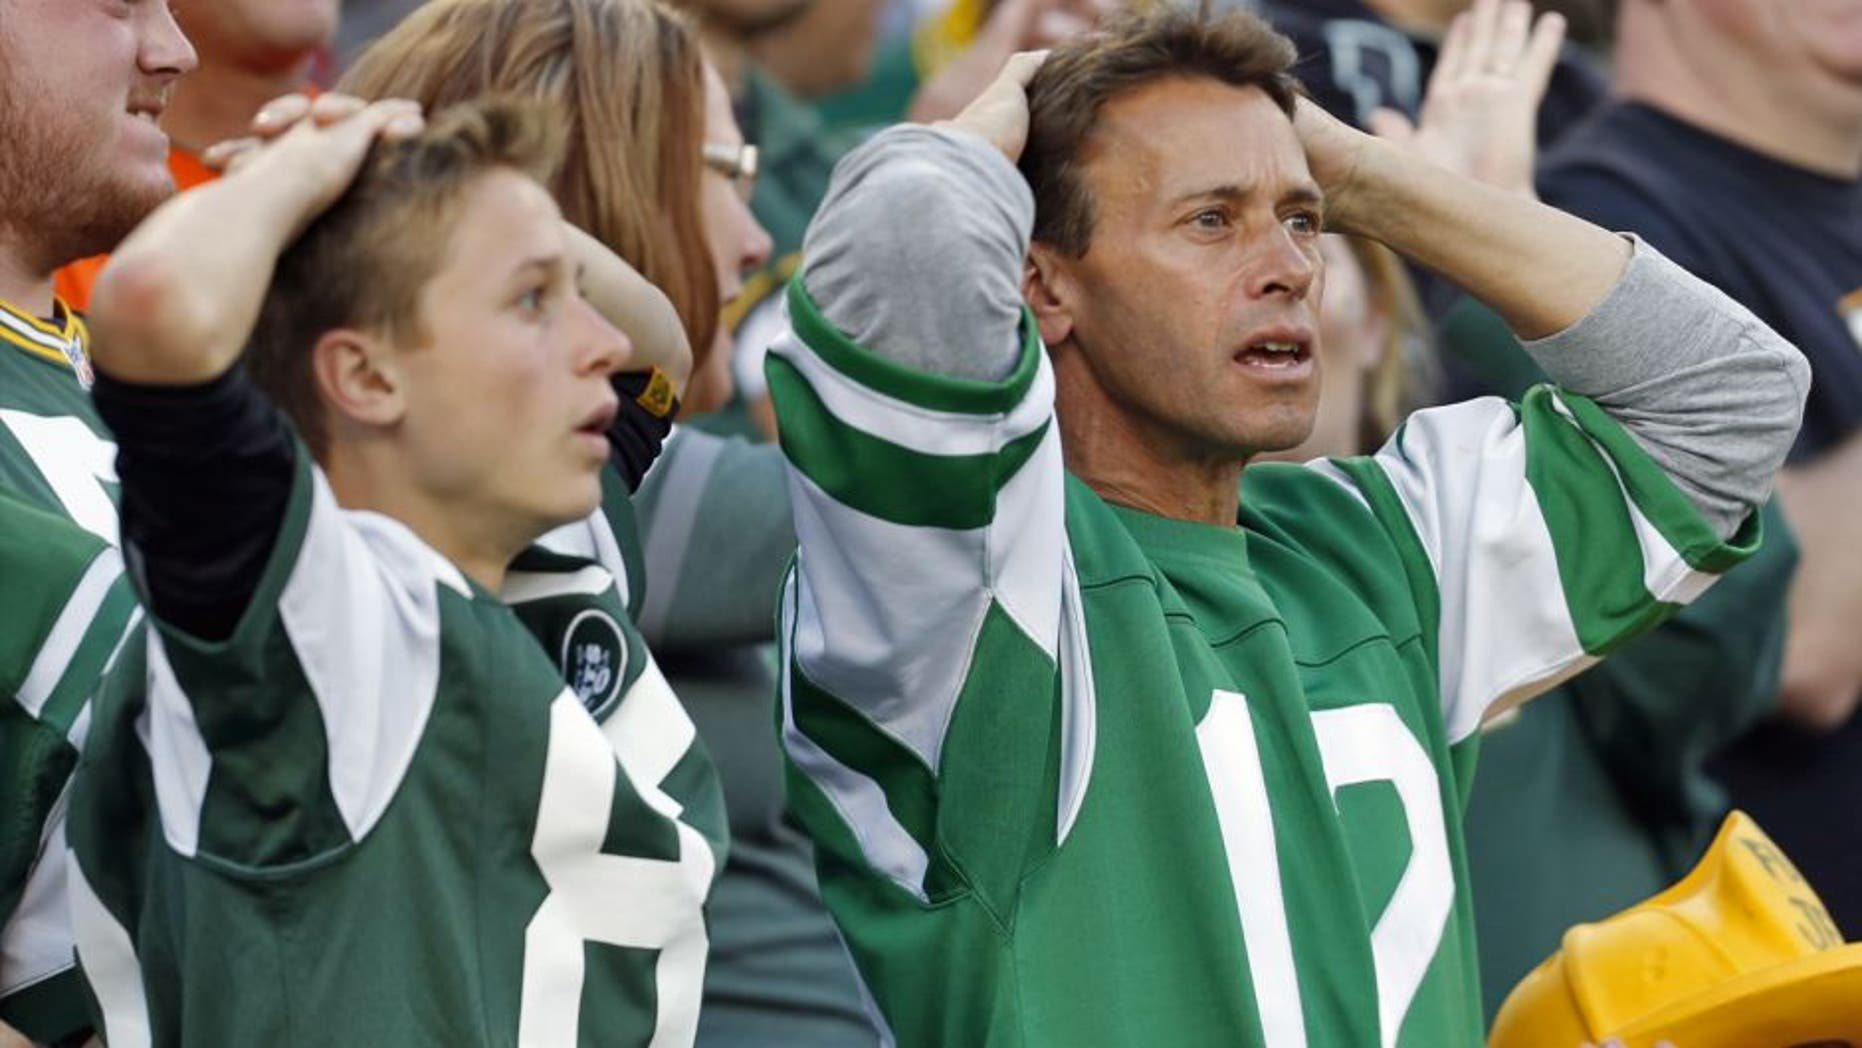 New York Jets fans react after a touchdown catch was called back because the team called a time out before the ball was snapped during the second half of an NFL football game against the Green Bay Packers Sunday, Sept. 14, 2014, in Green Bay, Wis. (AP Photo/Mike Roemer)